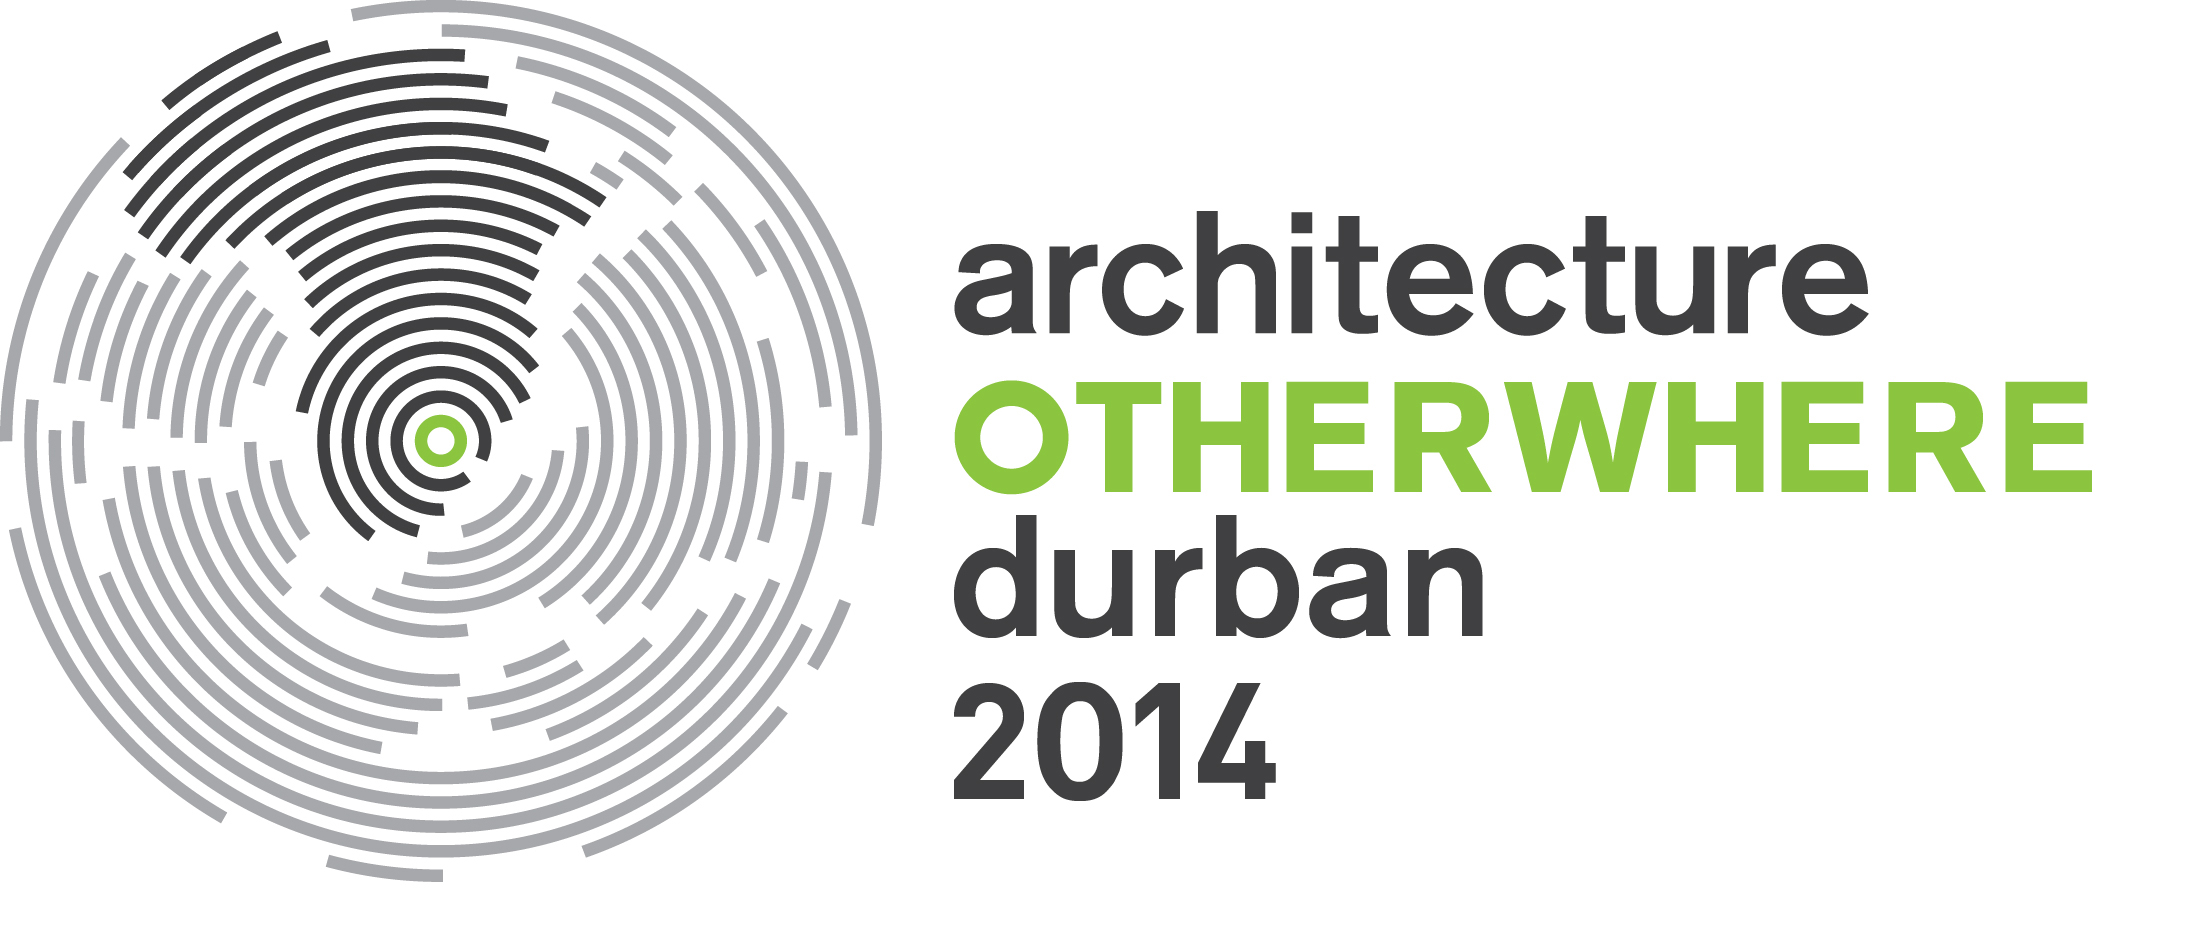 UIA2014 Durban: Architecture Otherwhere